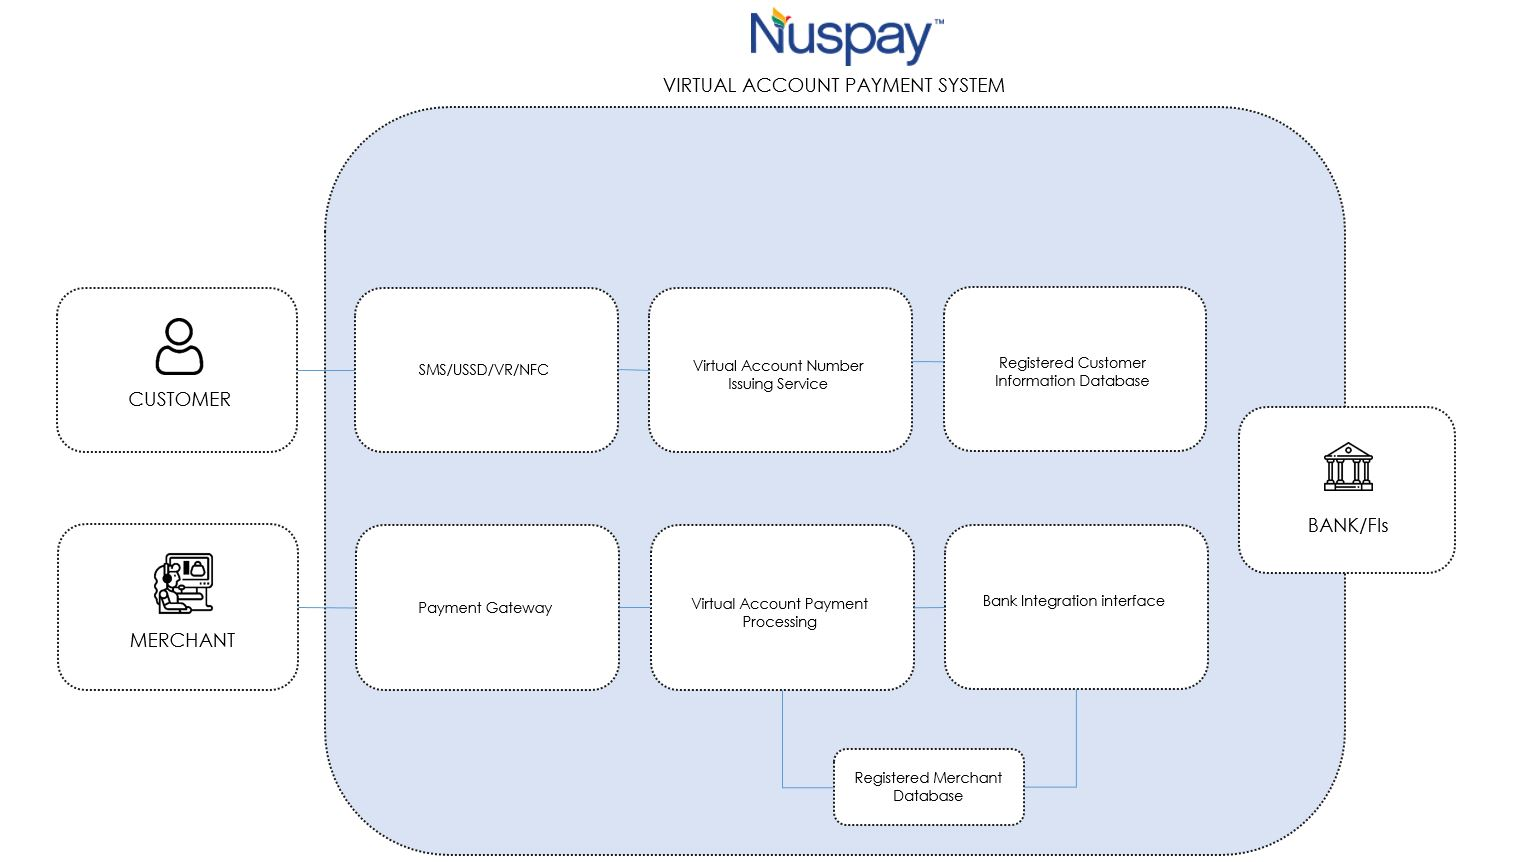 Nuspay Virtual Account Payment System